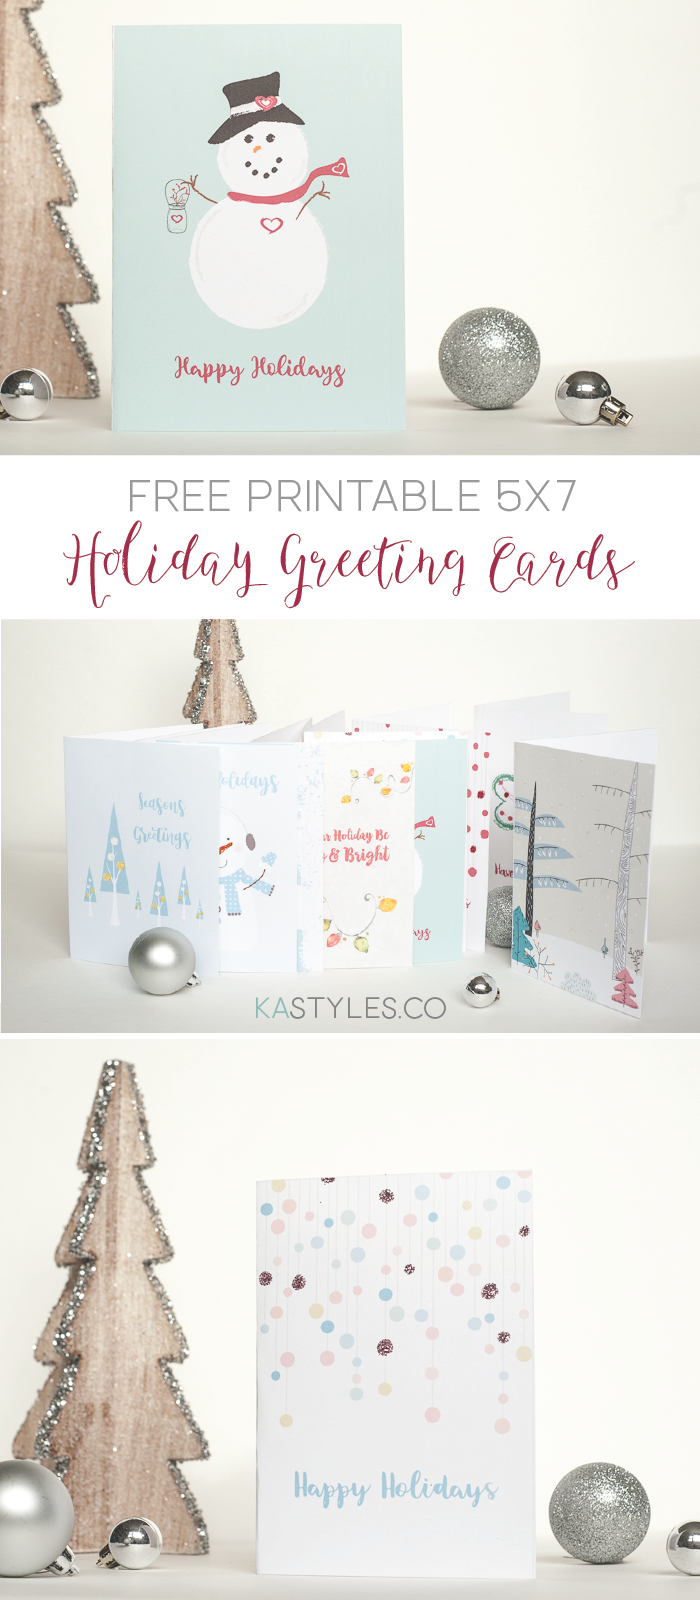 Free printable Holiday greeting cards. 5x7, use with A7 envelopes.